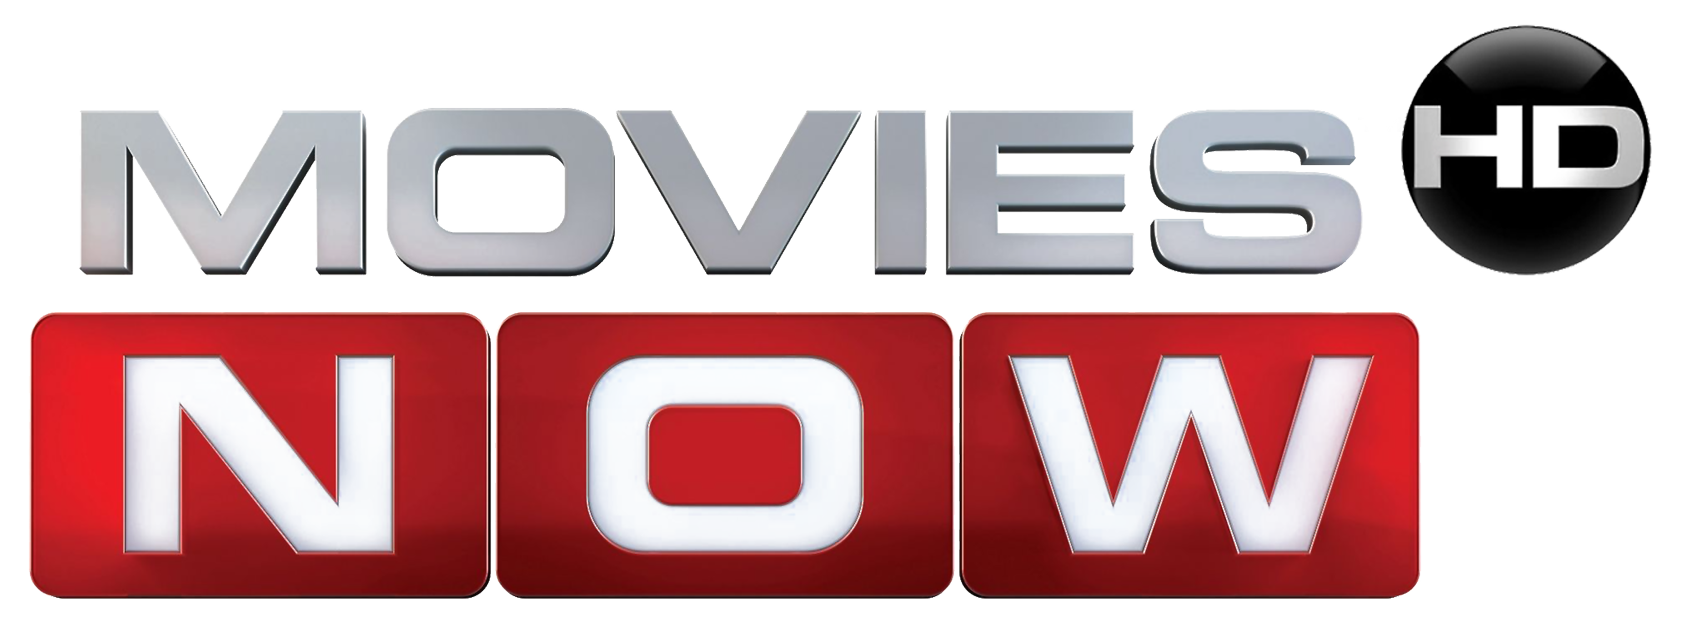 Movie HD PNG - 94429